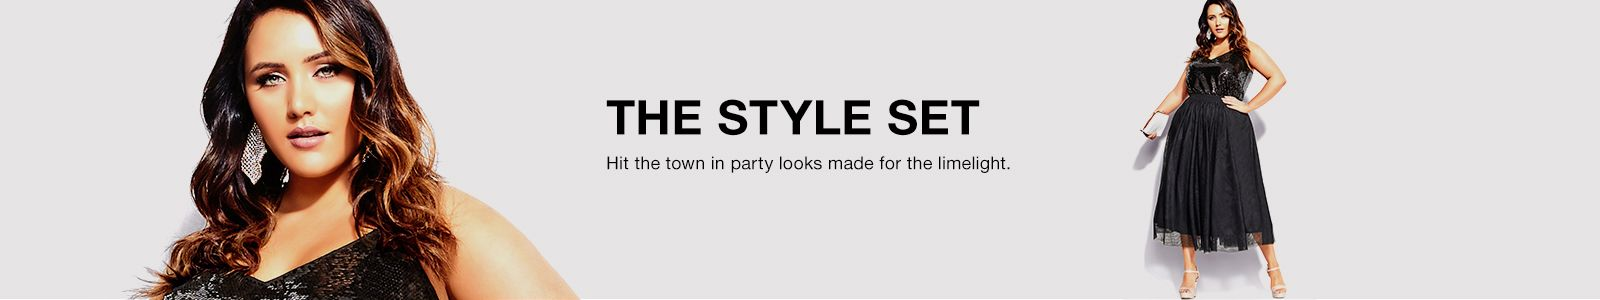 The Style Set, Hit the town in party looks made for the limelight